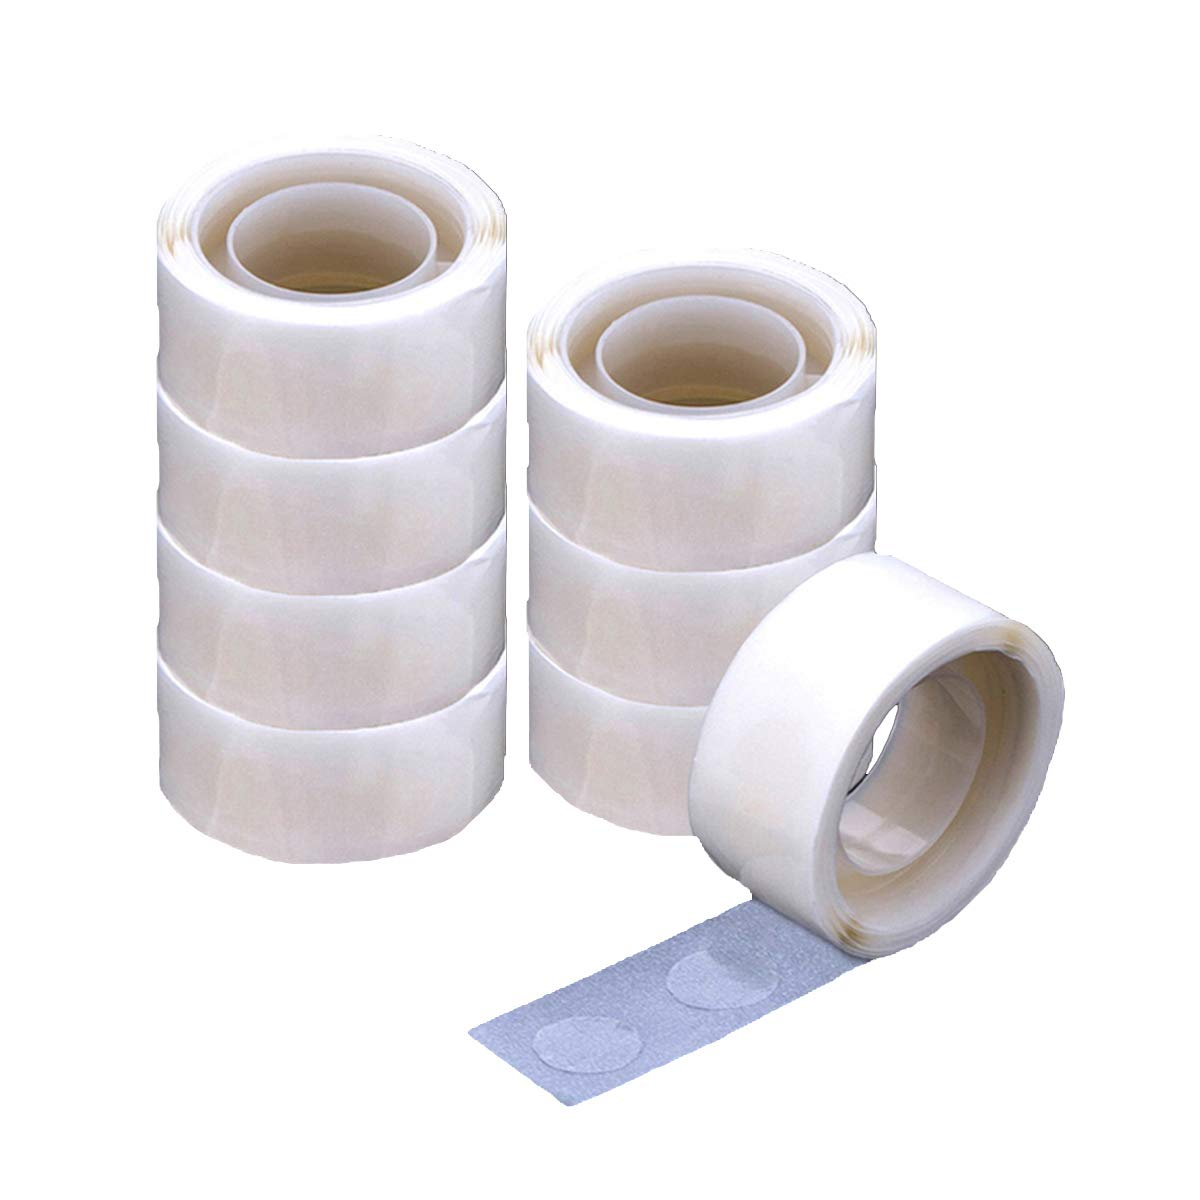 Balloon Glue 1200 PCS (12 Rolls) Double Sided Dots of Glue Craft Adhesive Point Tape Non-liquid Glue (1200 PCS) Novelty Bank 4336846479